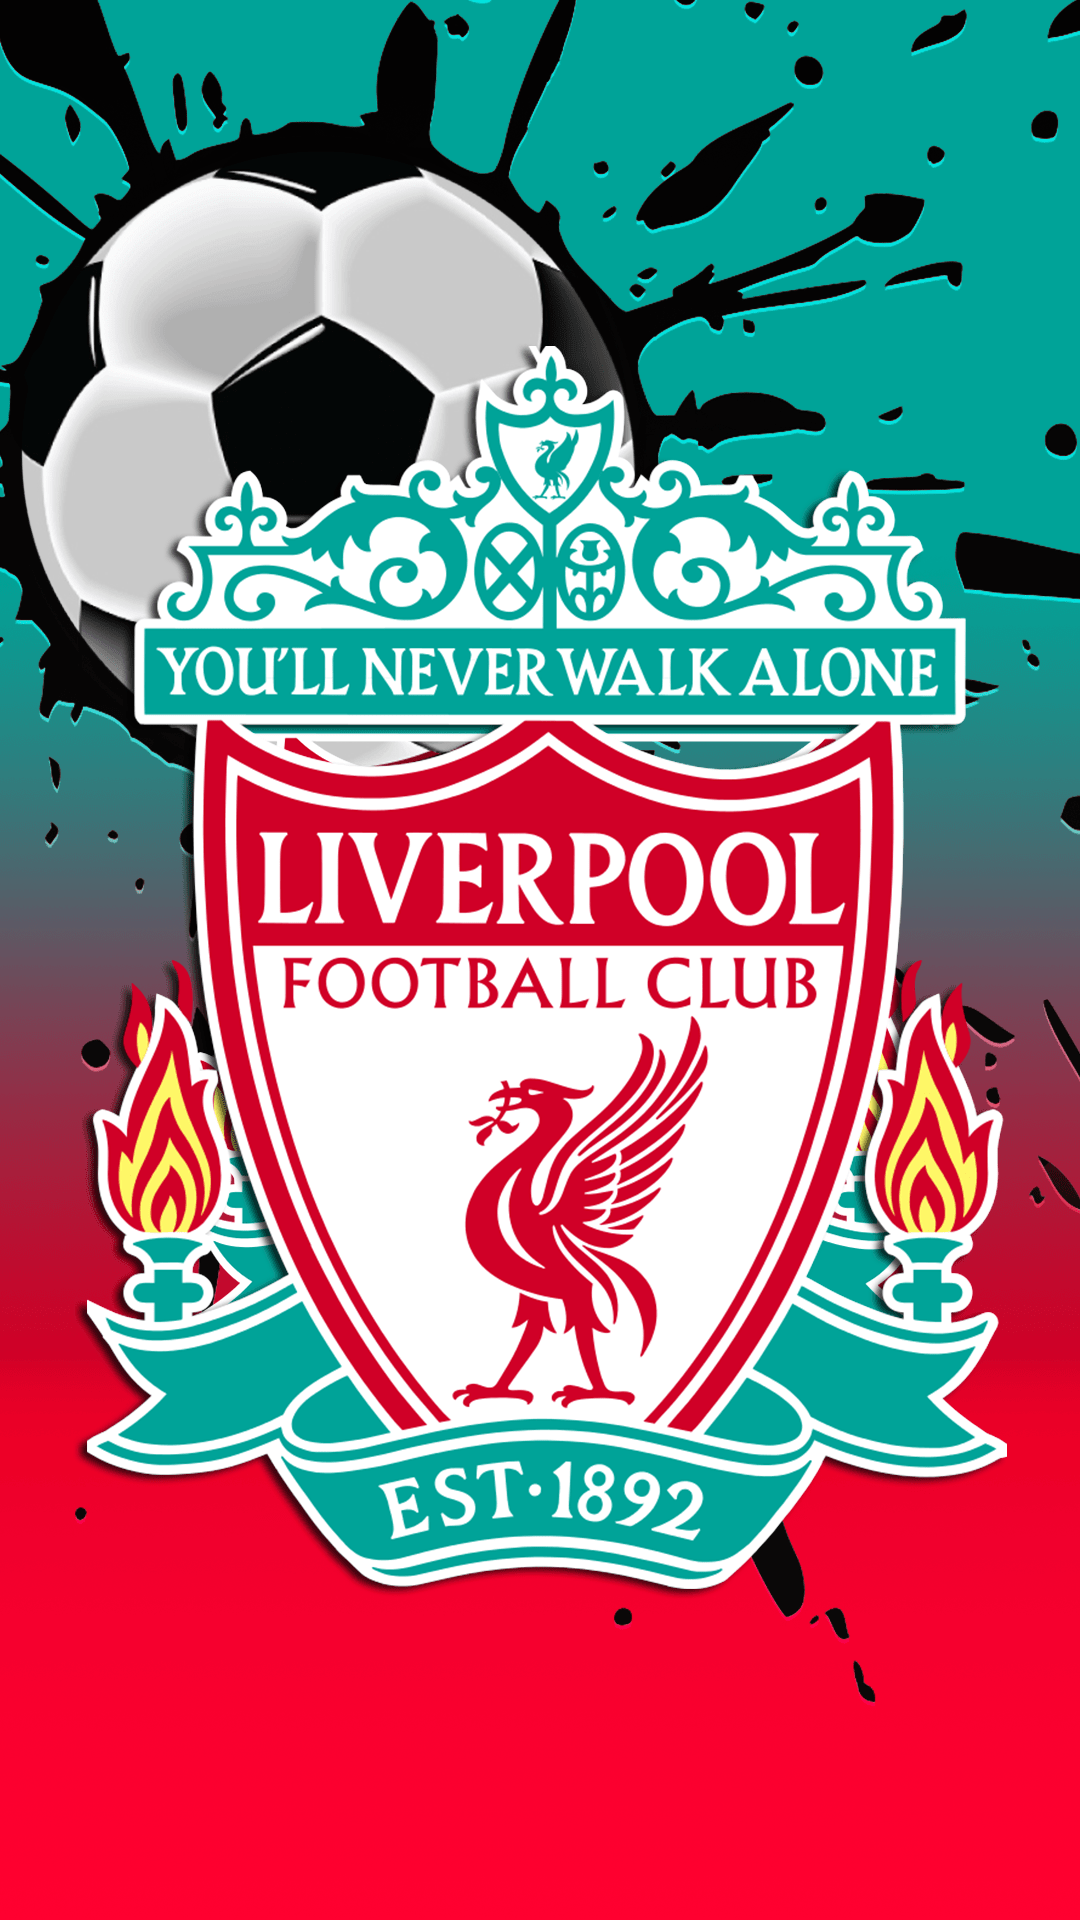 How To Set Live Wallpaper On Iphone X Ultra Hd Liverpool Fc Wallpaper For Your Mobile Phone 0161